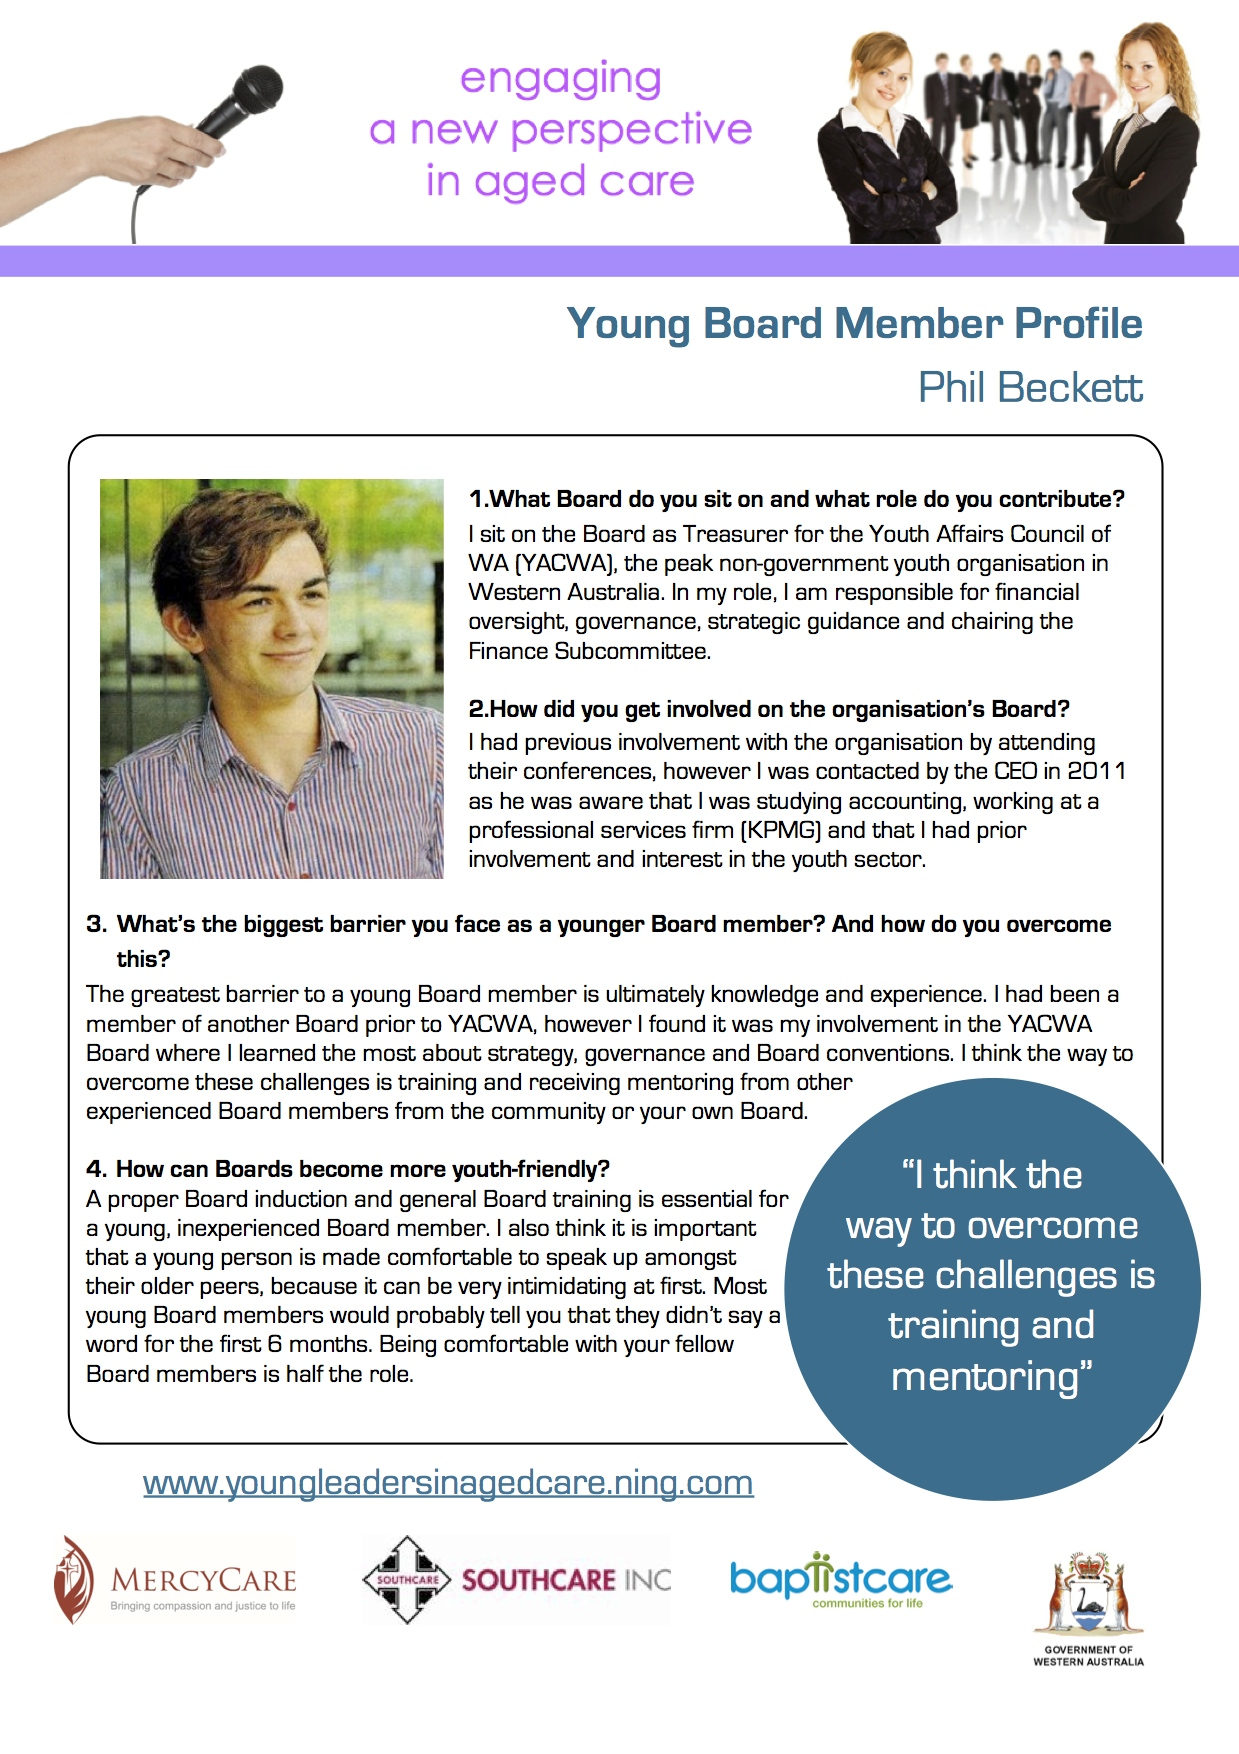 Resource 7 PhilBeckettYoungBoardMemberProfile